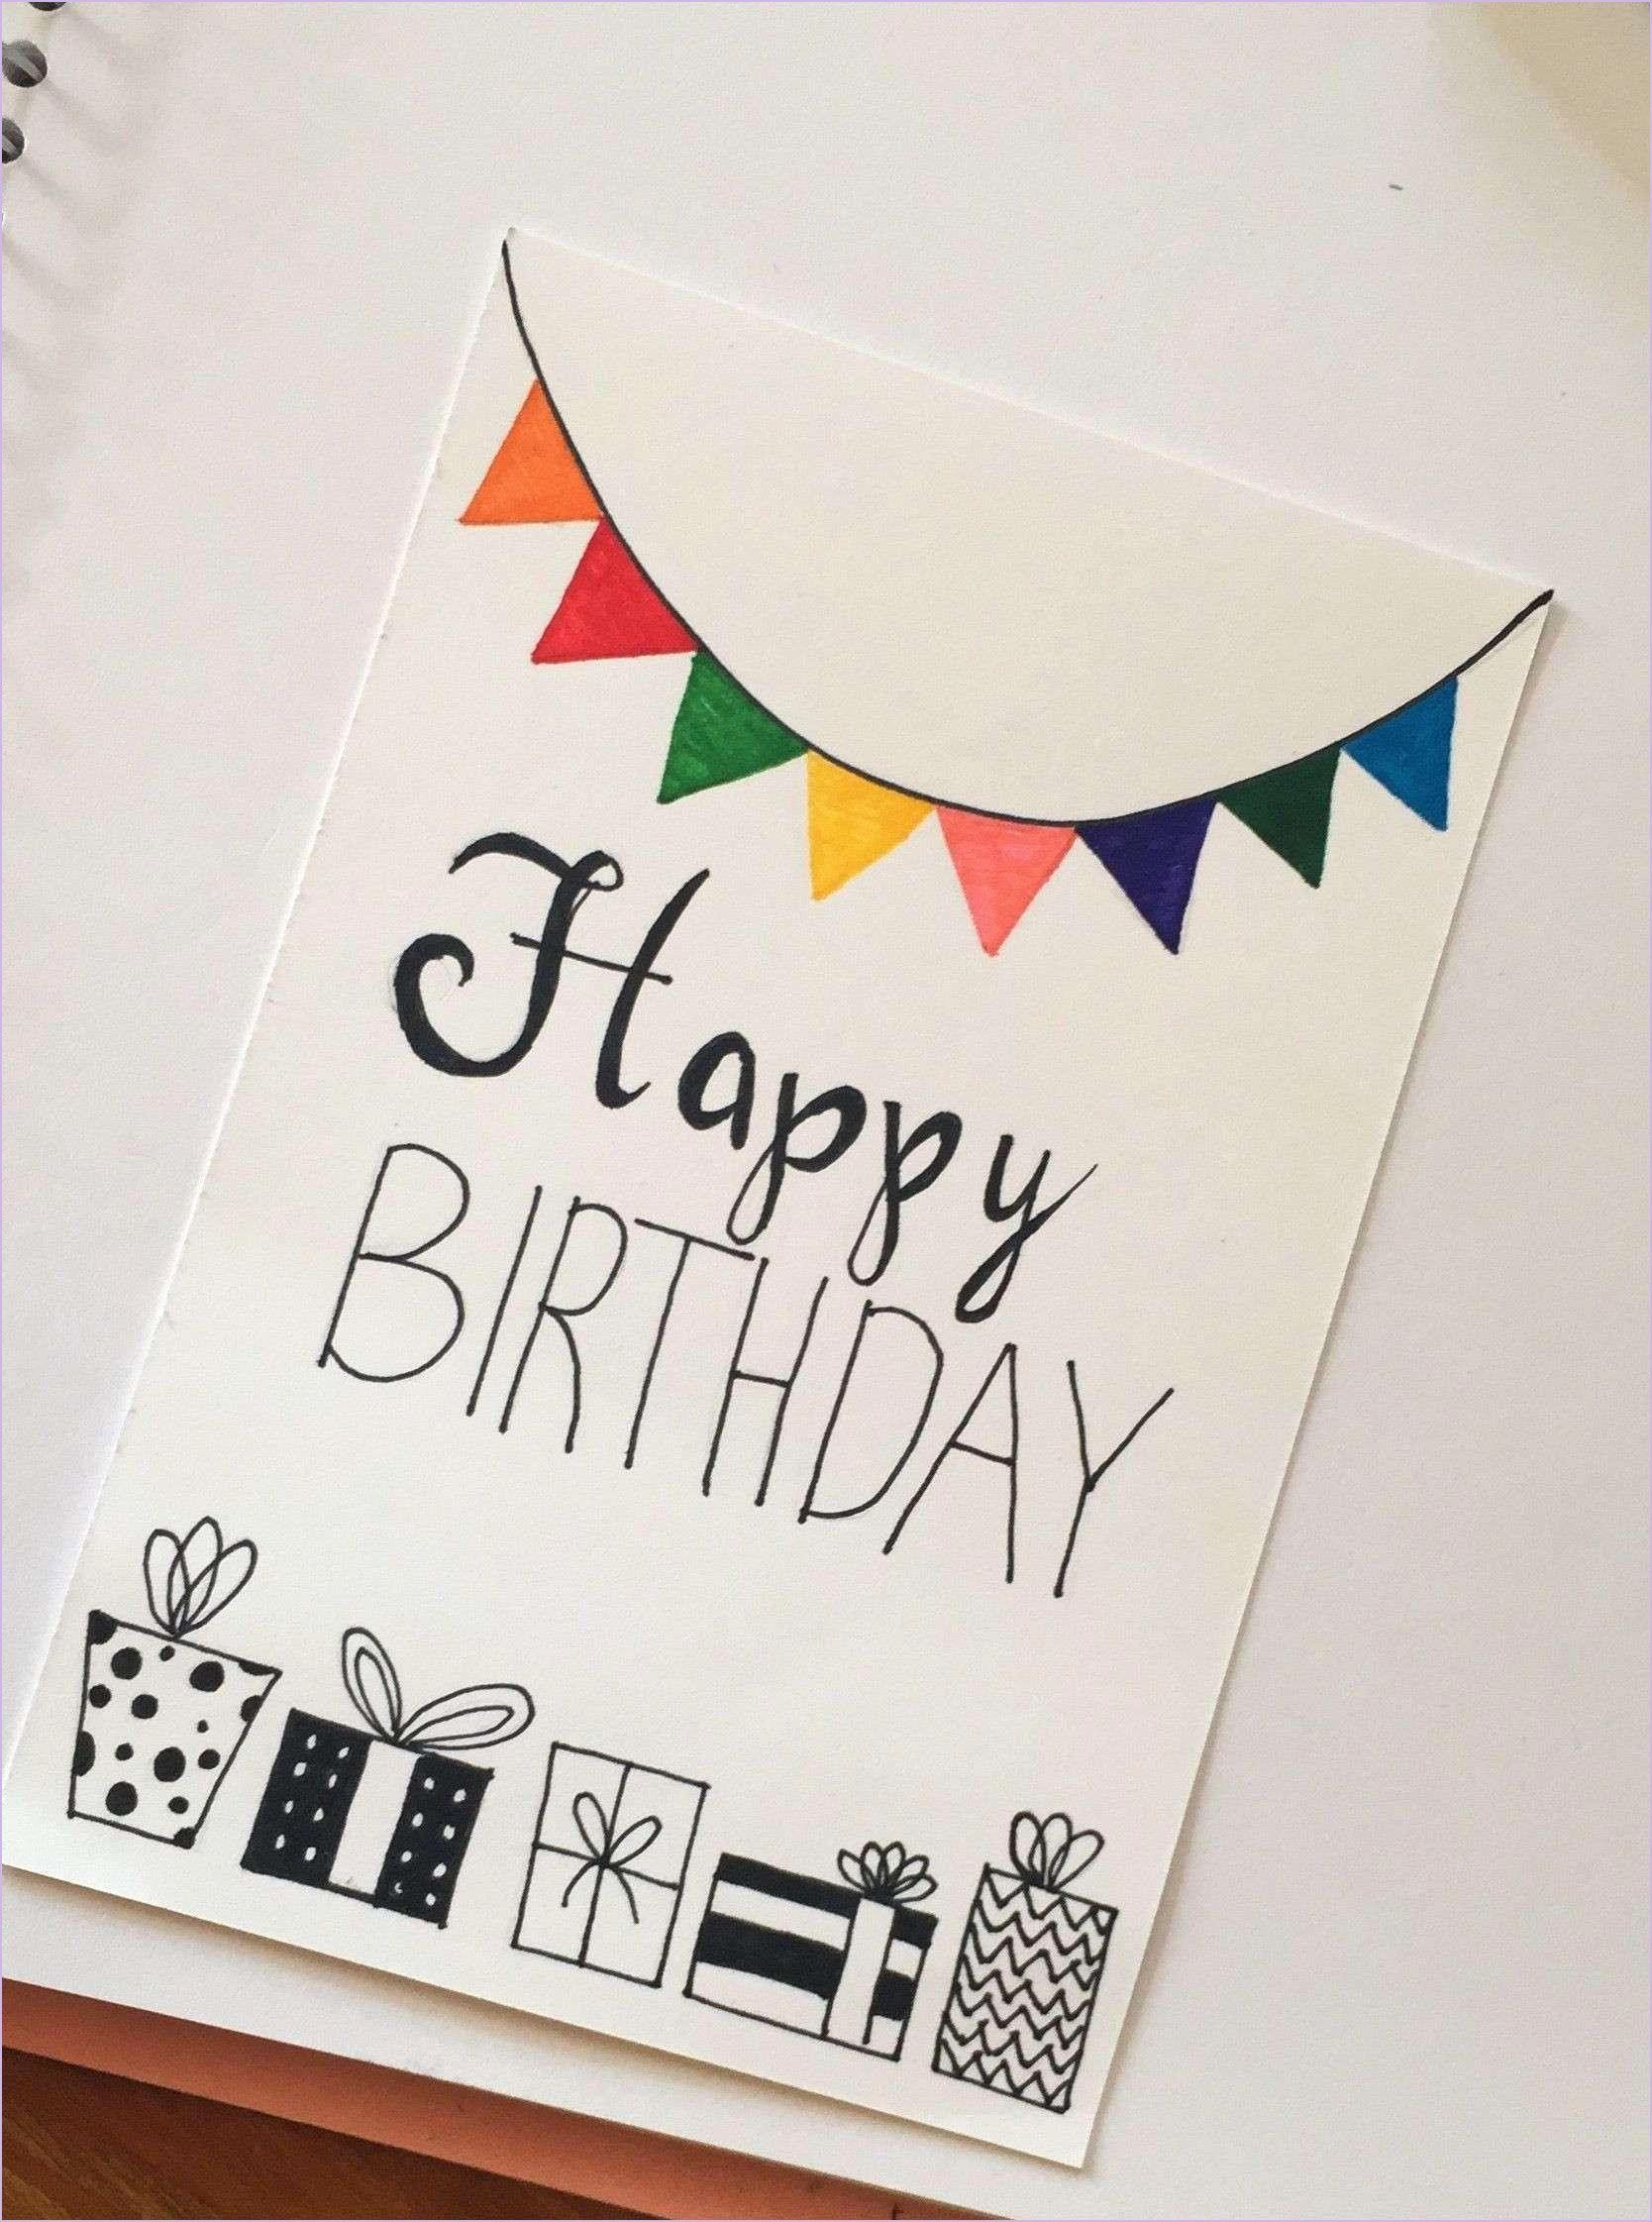 Handmade Birthday Cards For Dad From Daughter Birthday Card Ideas